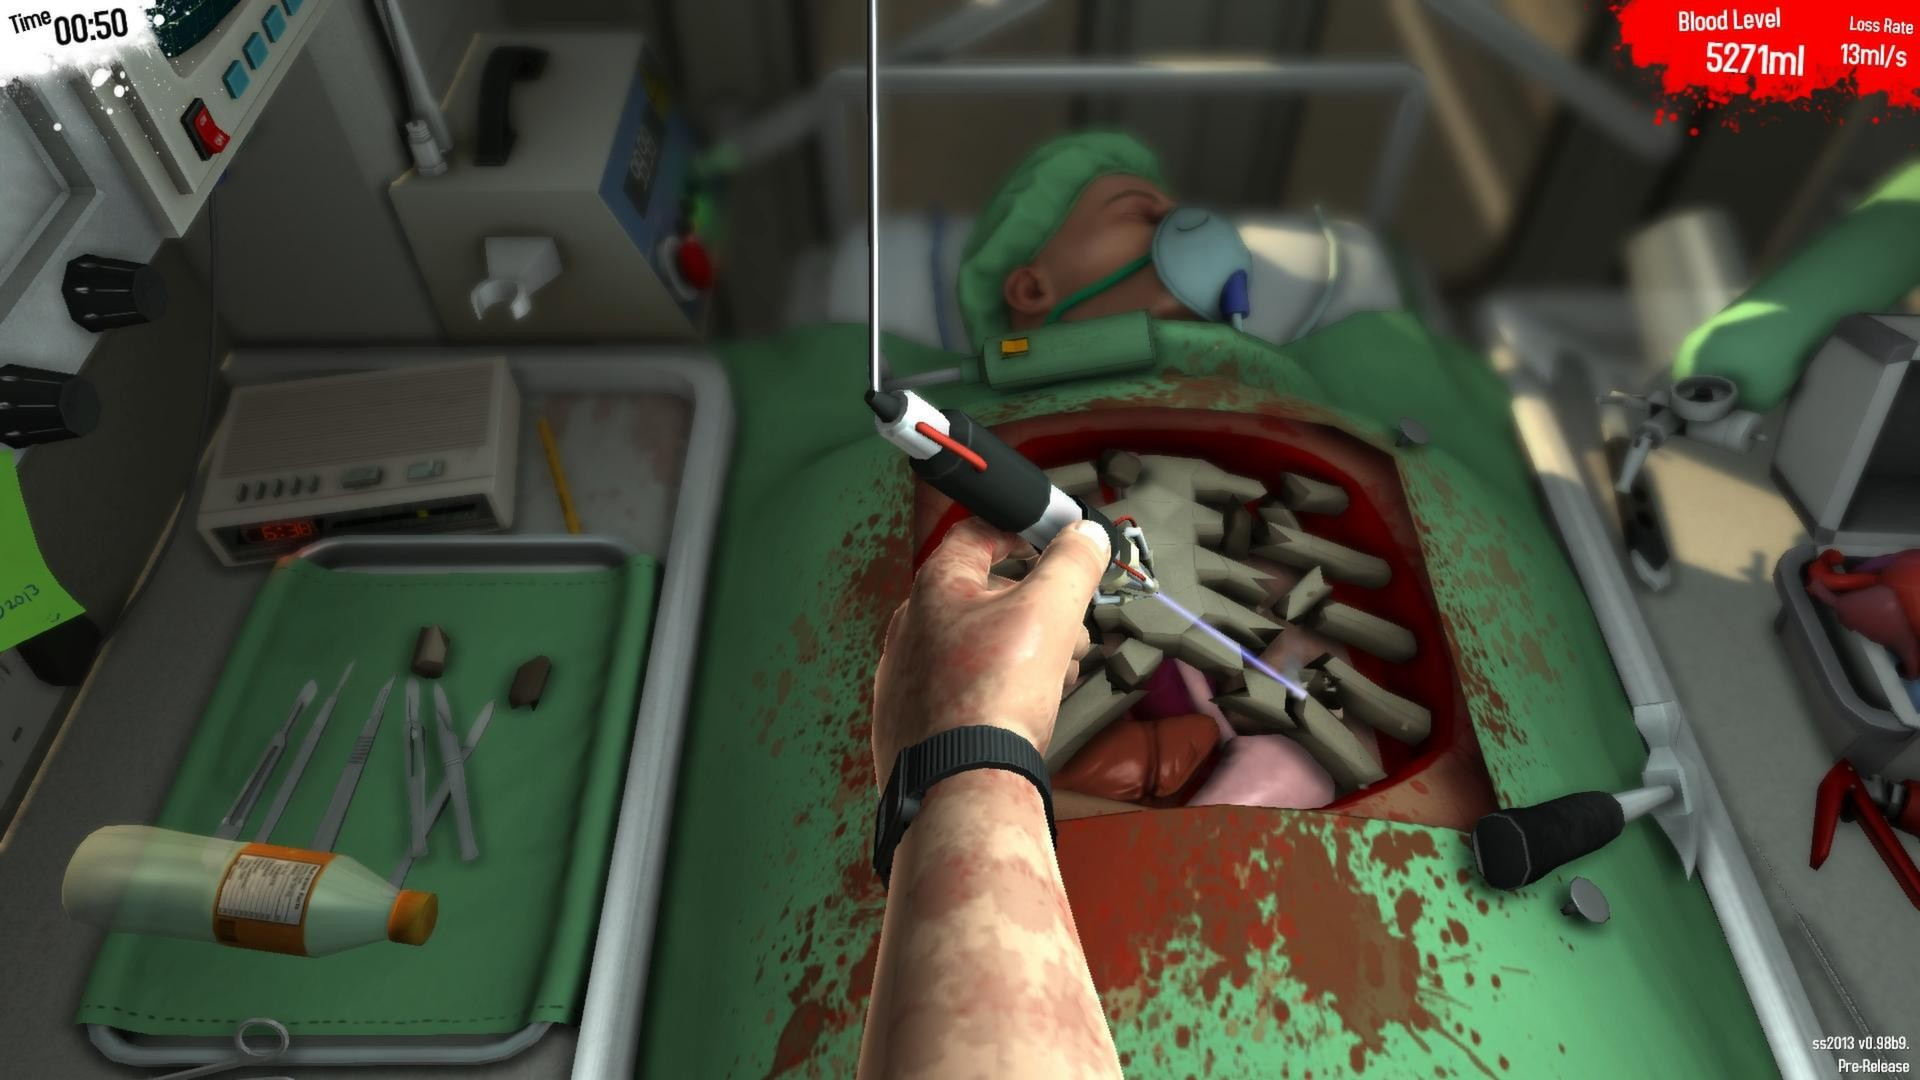 Surgeon Simulator Is Coming To The PS4 Next Week